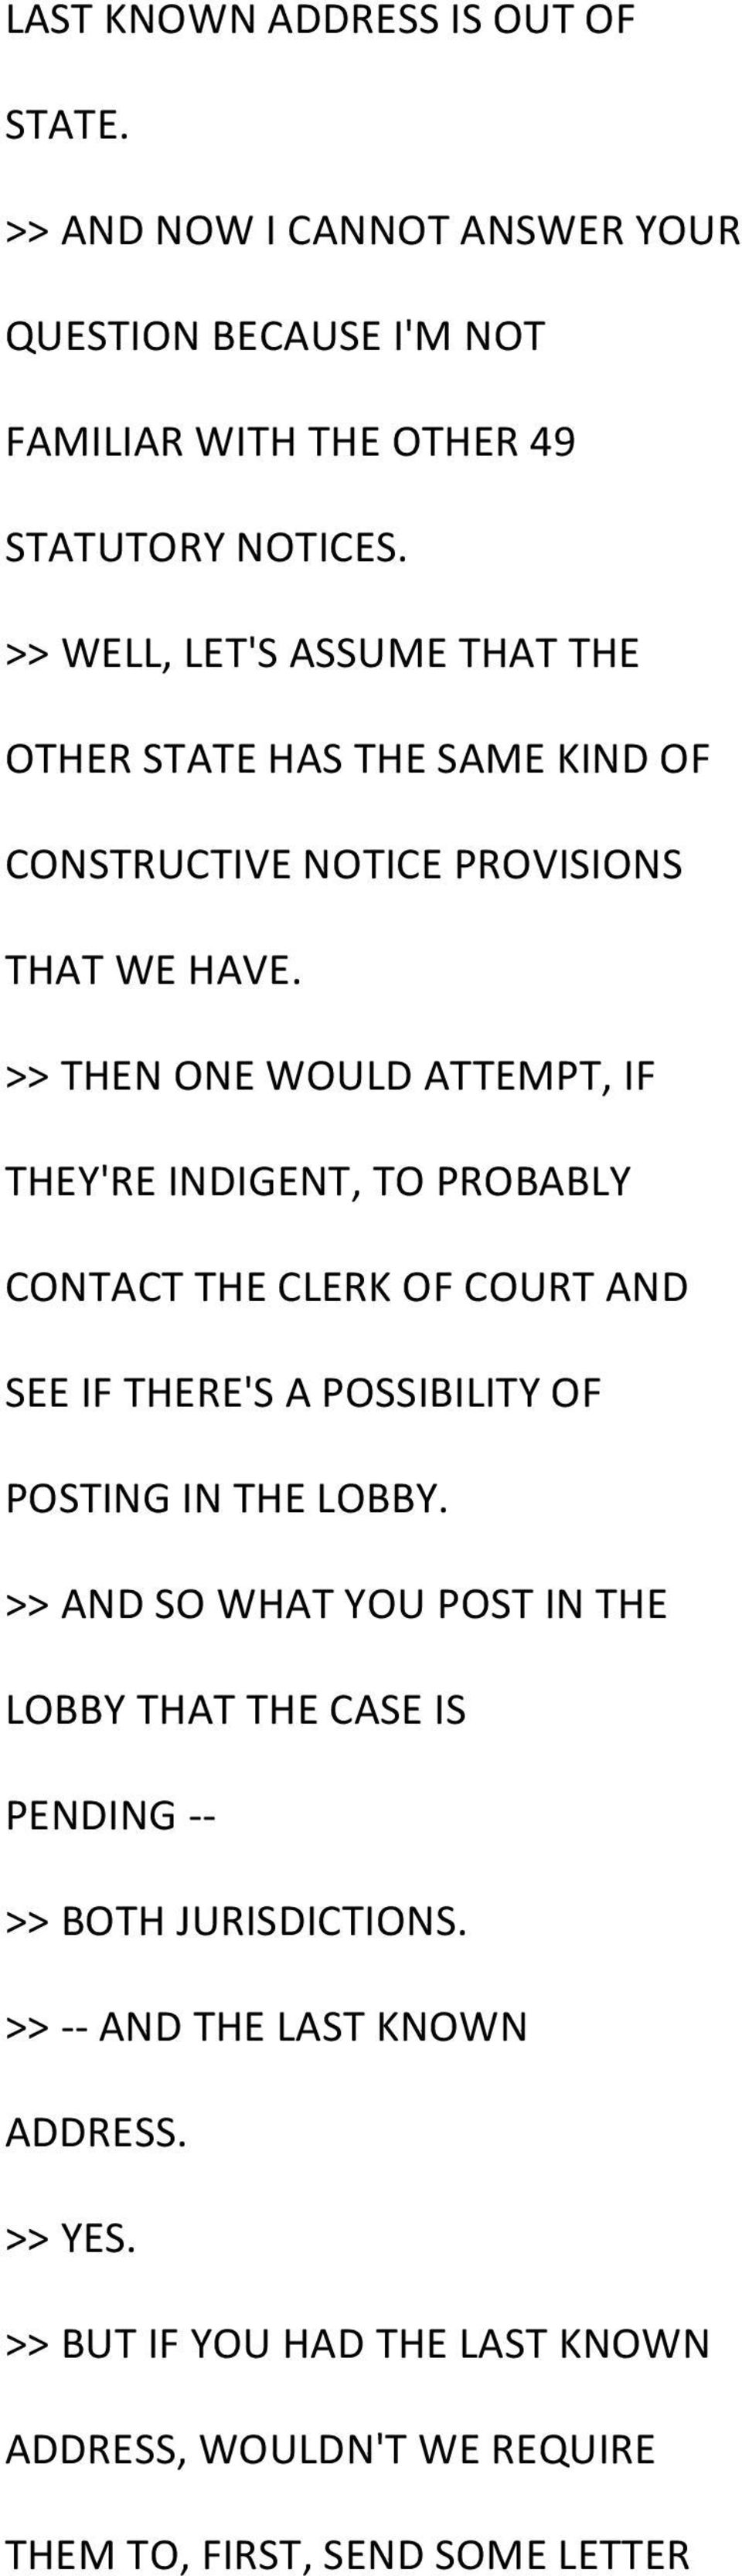 >> THEN ONE WOULD ATTEMPT, IF THEY'RE INDIGENT, TO PROBABLY CONTACT THE CLERK OF COURT AND SEE IF THERE'S A POSSIBILITY OF POSTING IN THE LOBBY.